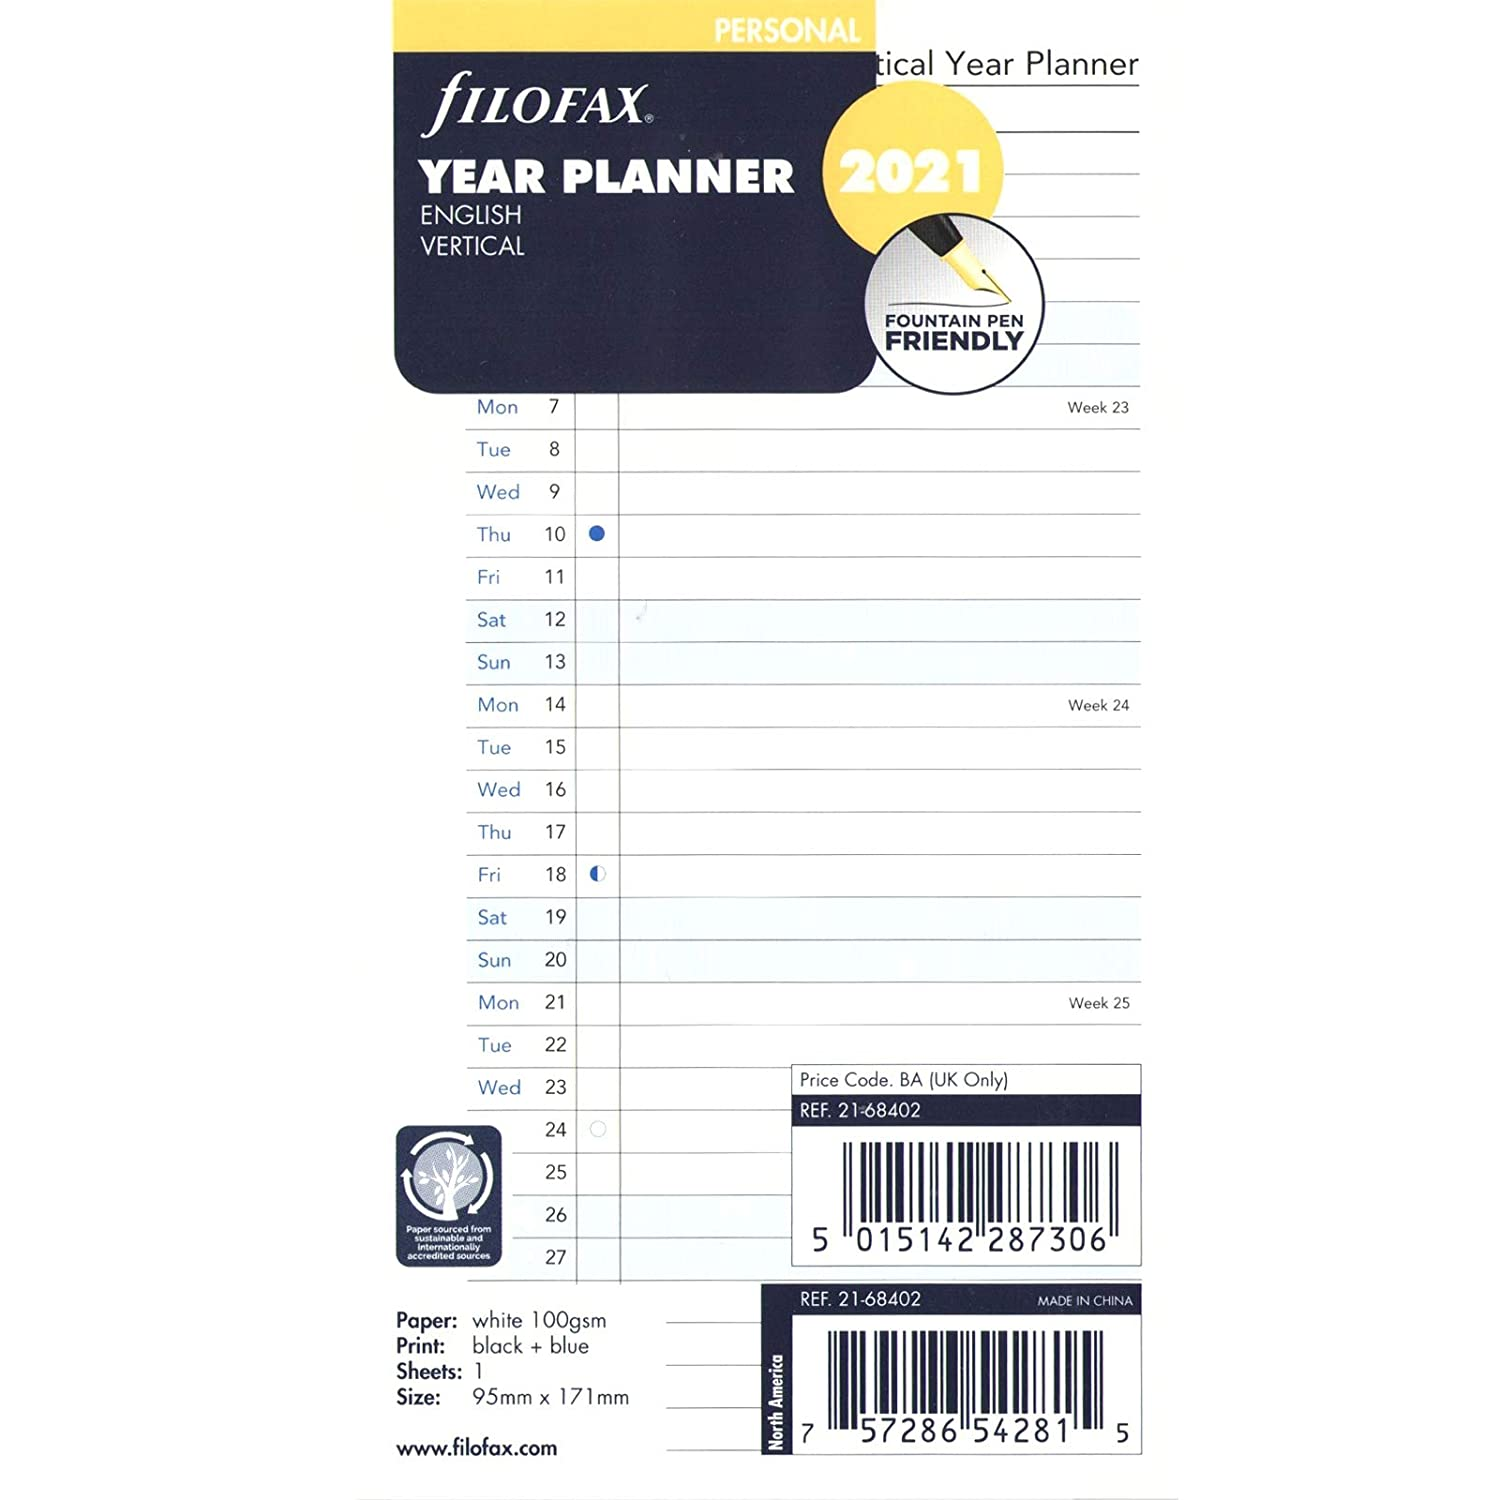 Filofax Personal Year Planner Vertical English 2021